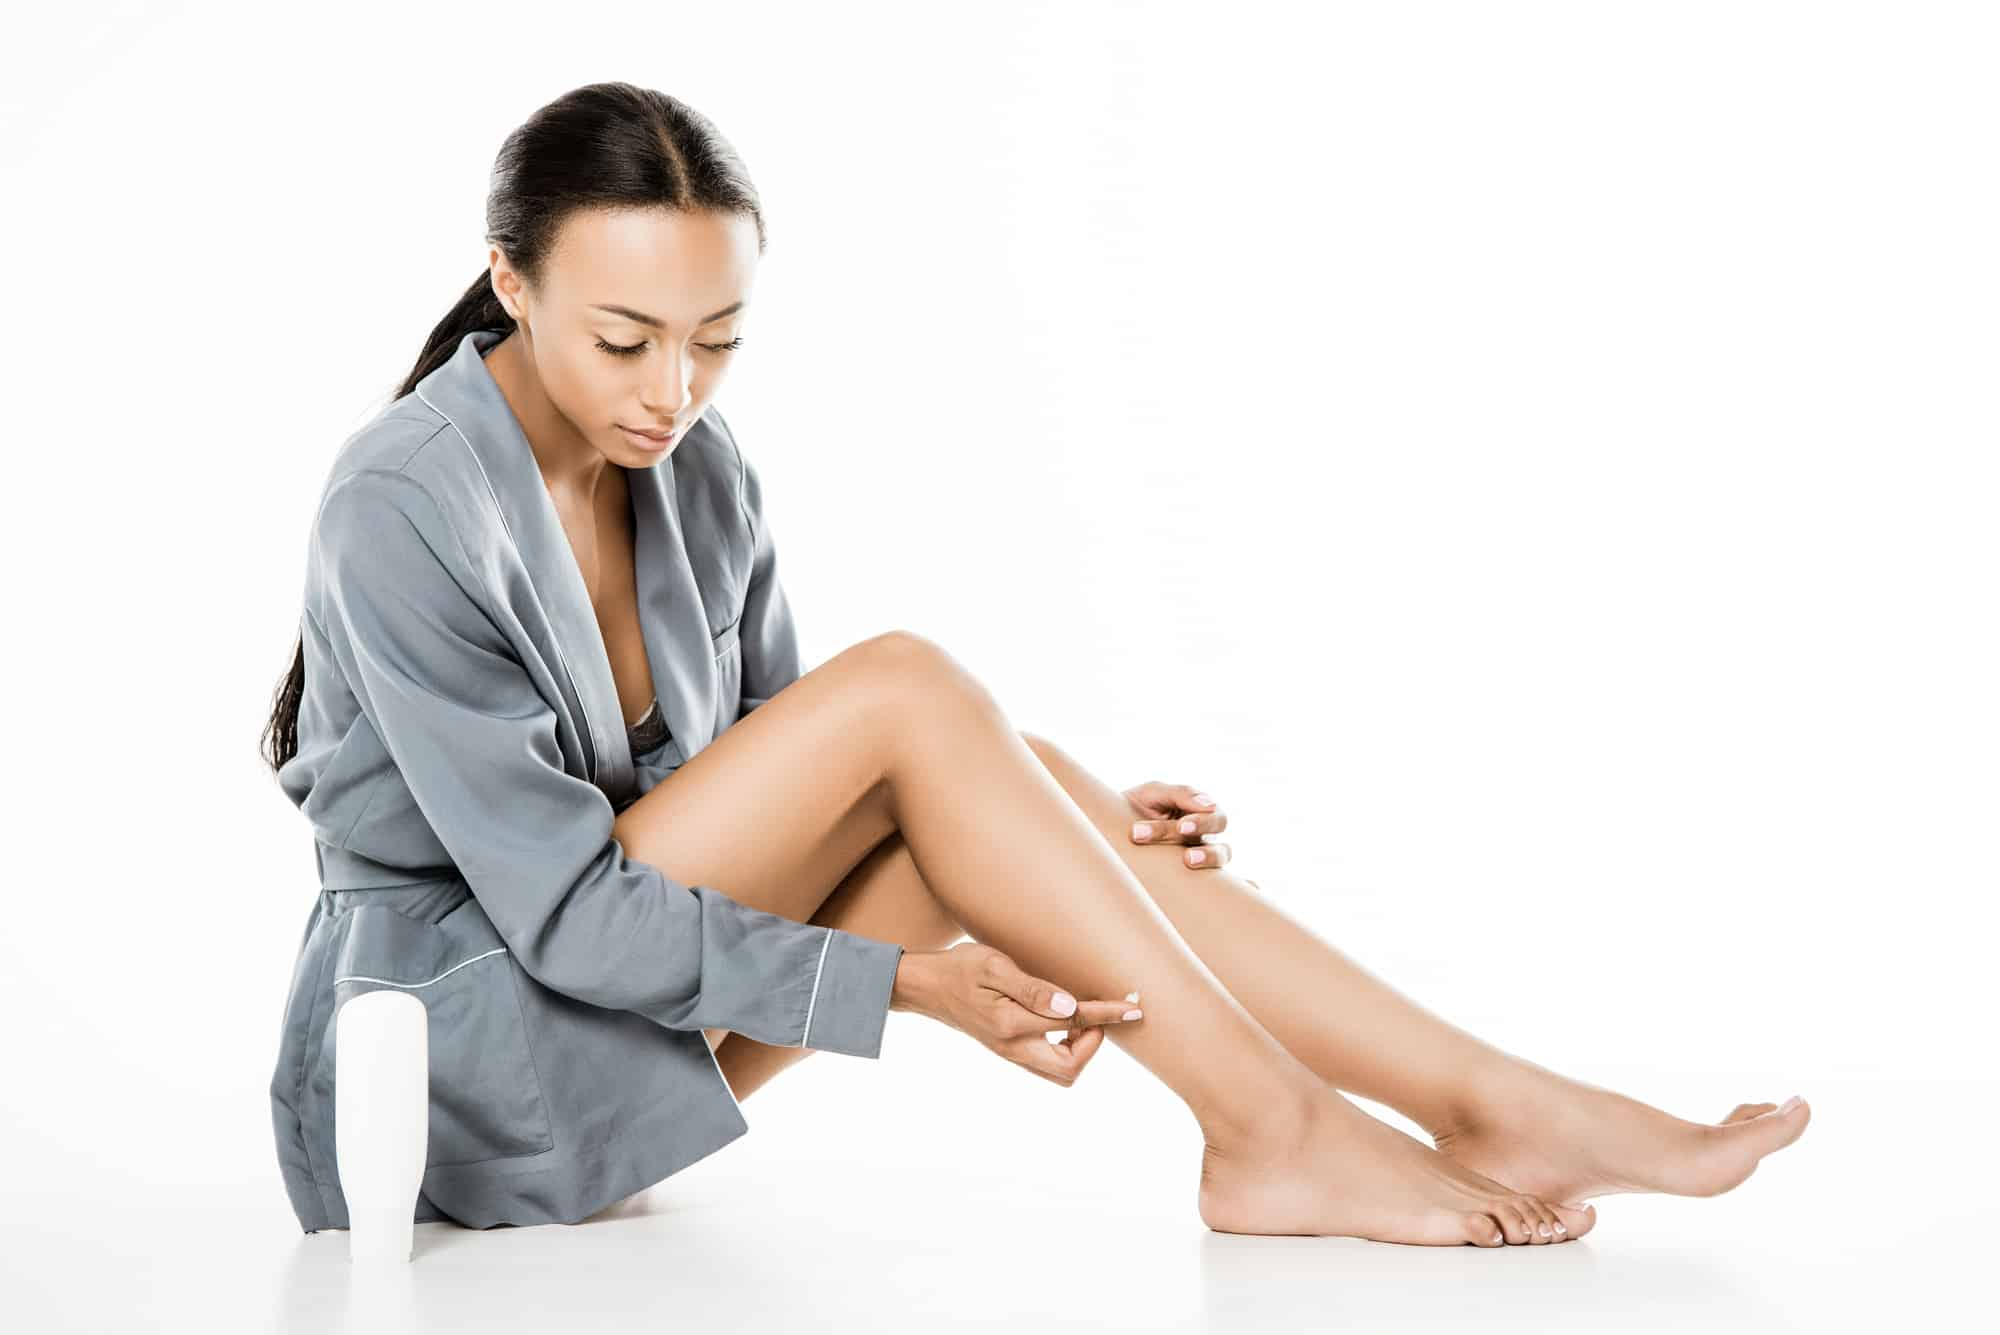 woman of color putting lotion on her dry skin on her legs